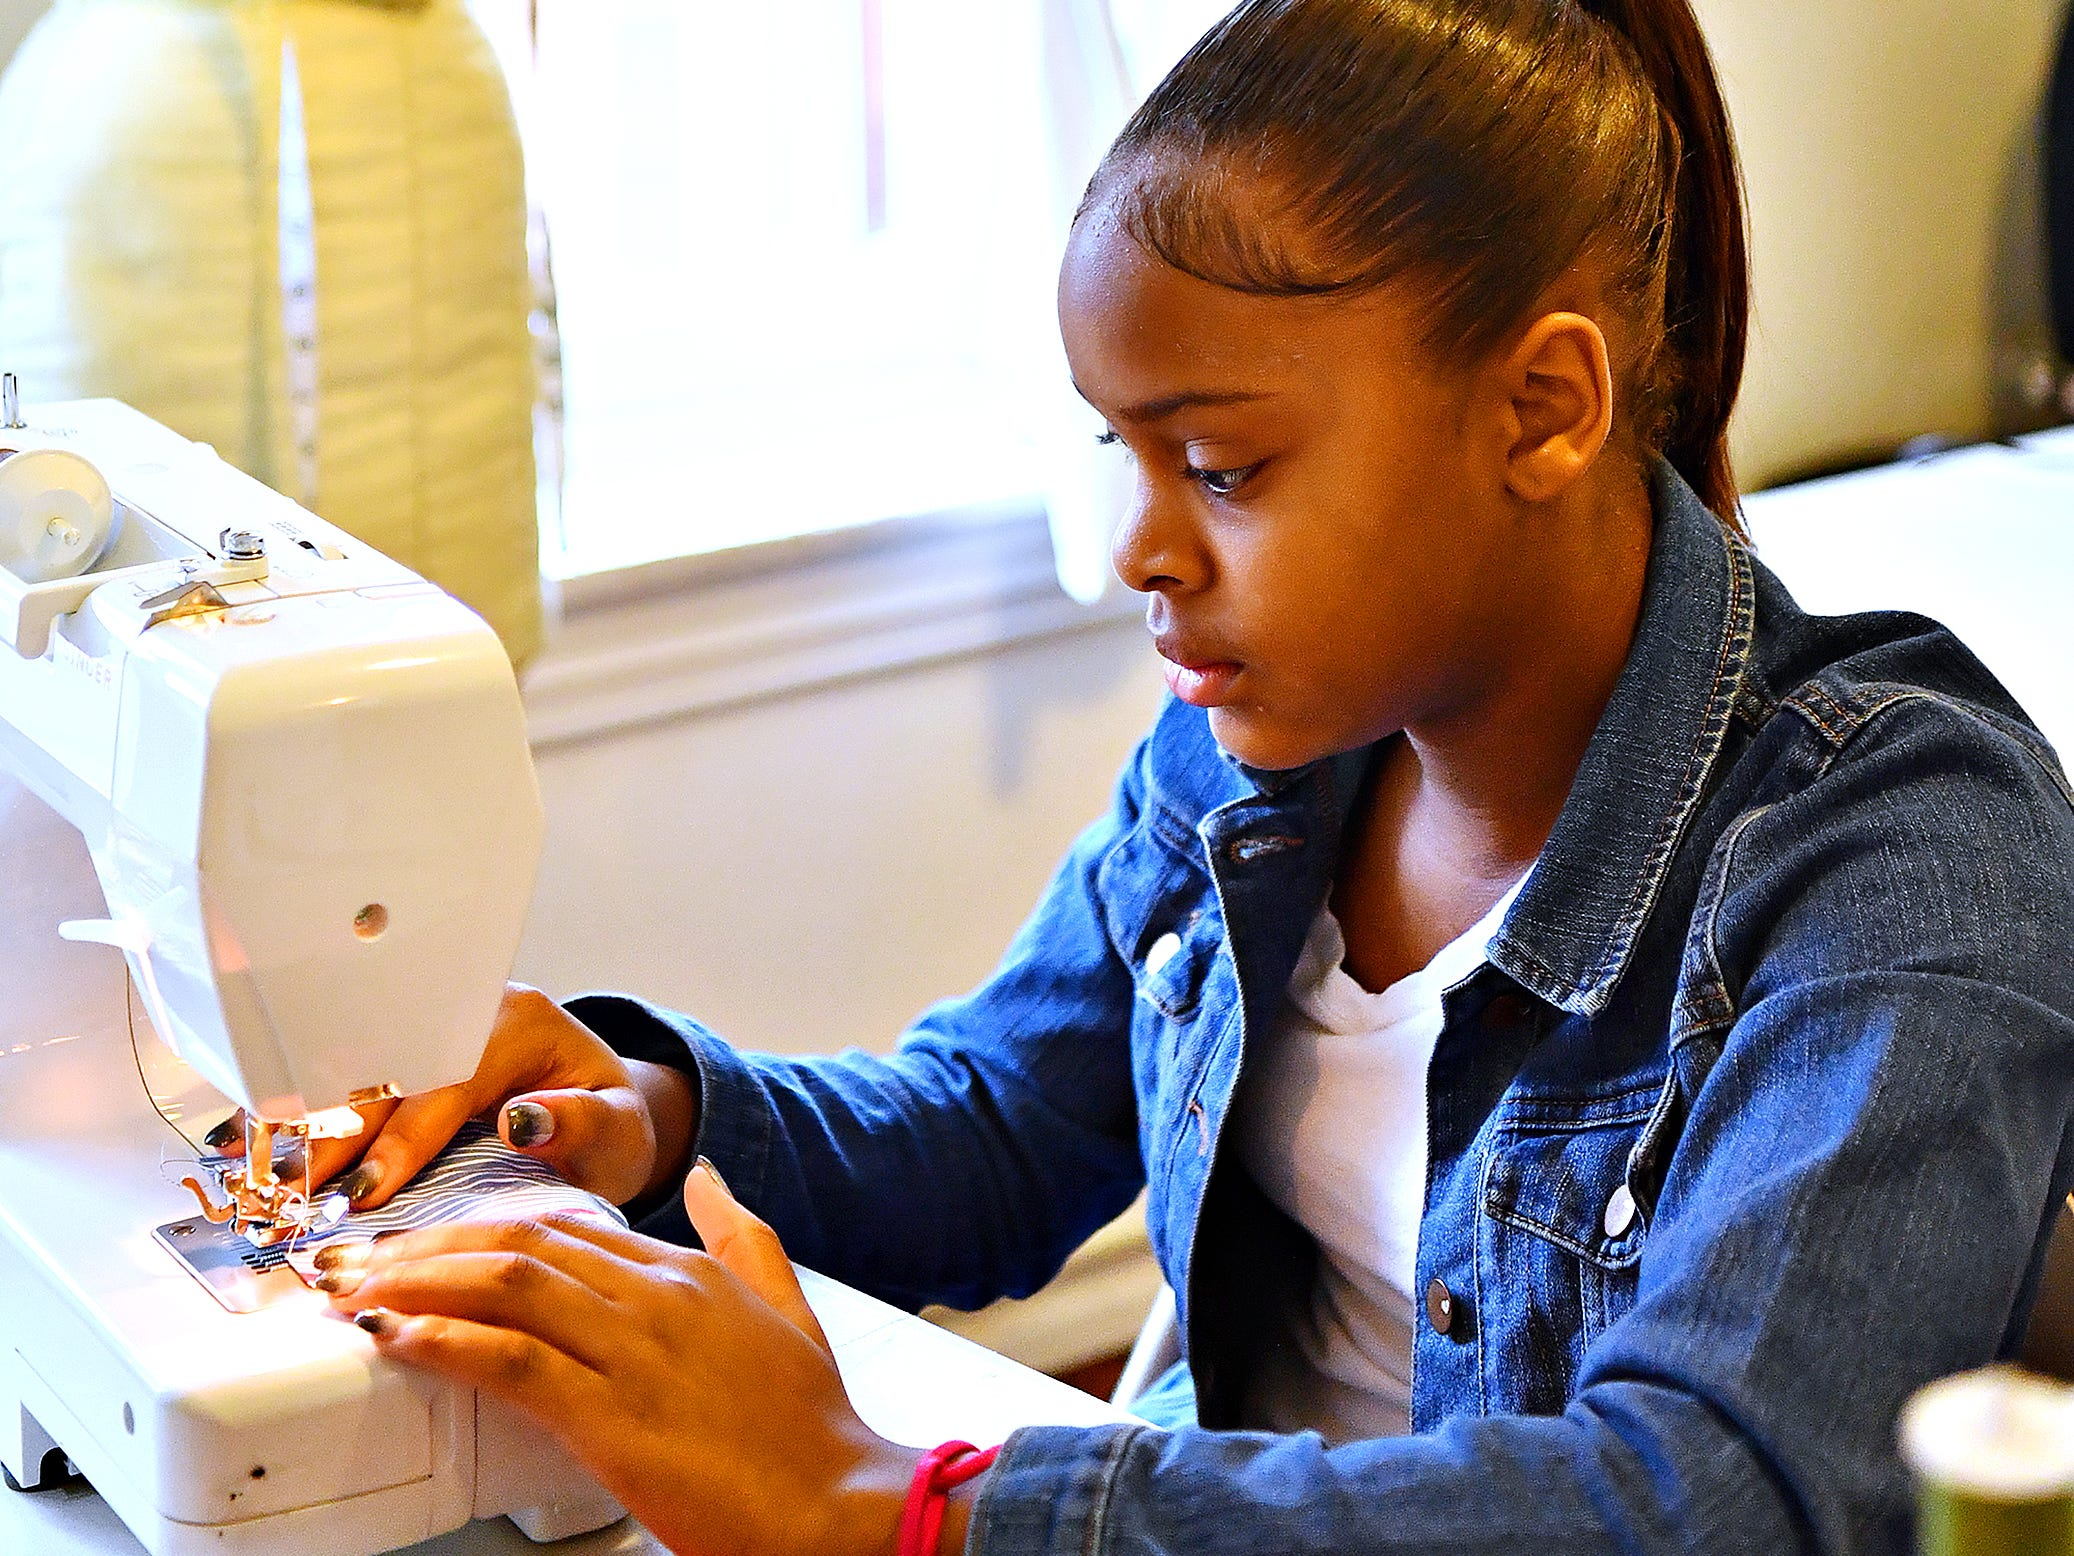 Mikya Holley, 11, of York City, practices sewing during a workshop led by Victoria Kageni-Woodard at her store, Gusa by Victoria, in York City, Saturday, Jan. 5, 2019. Dawn J. Sagert photo